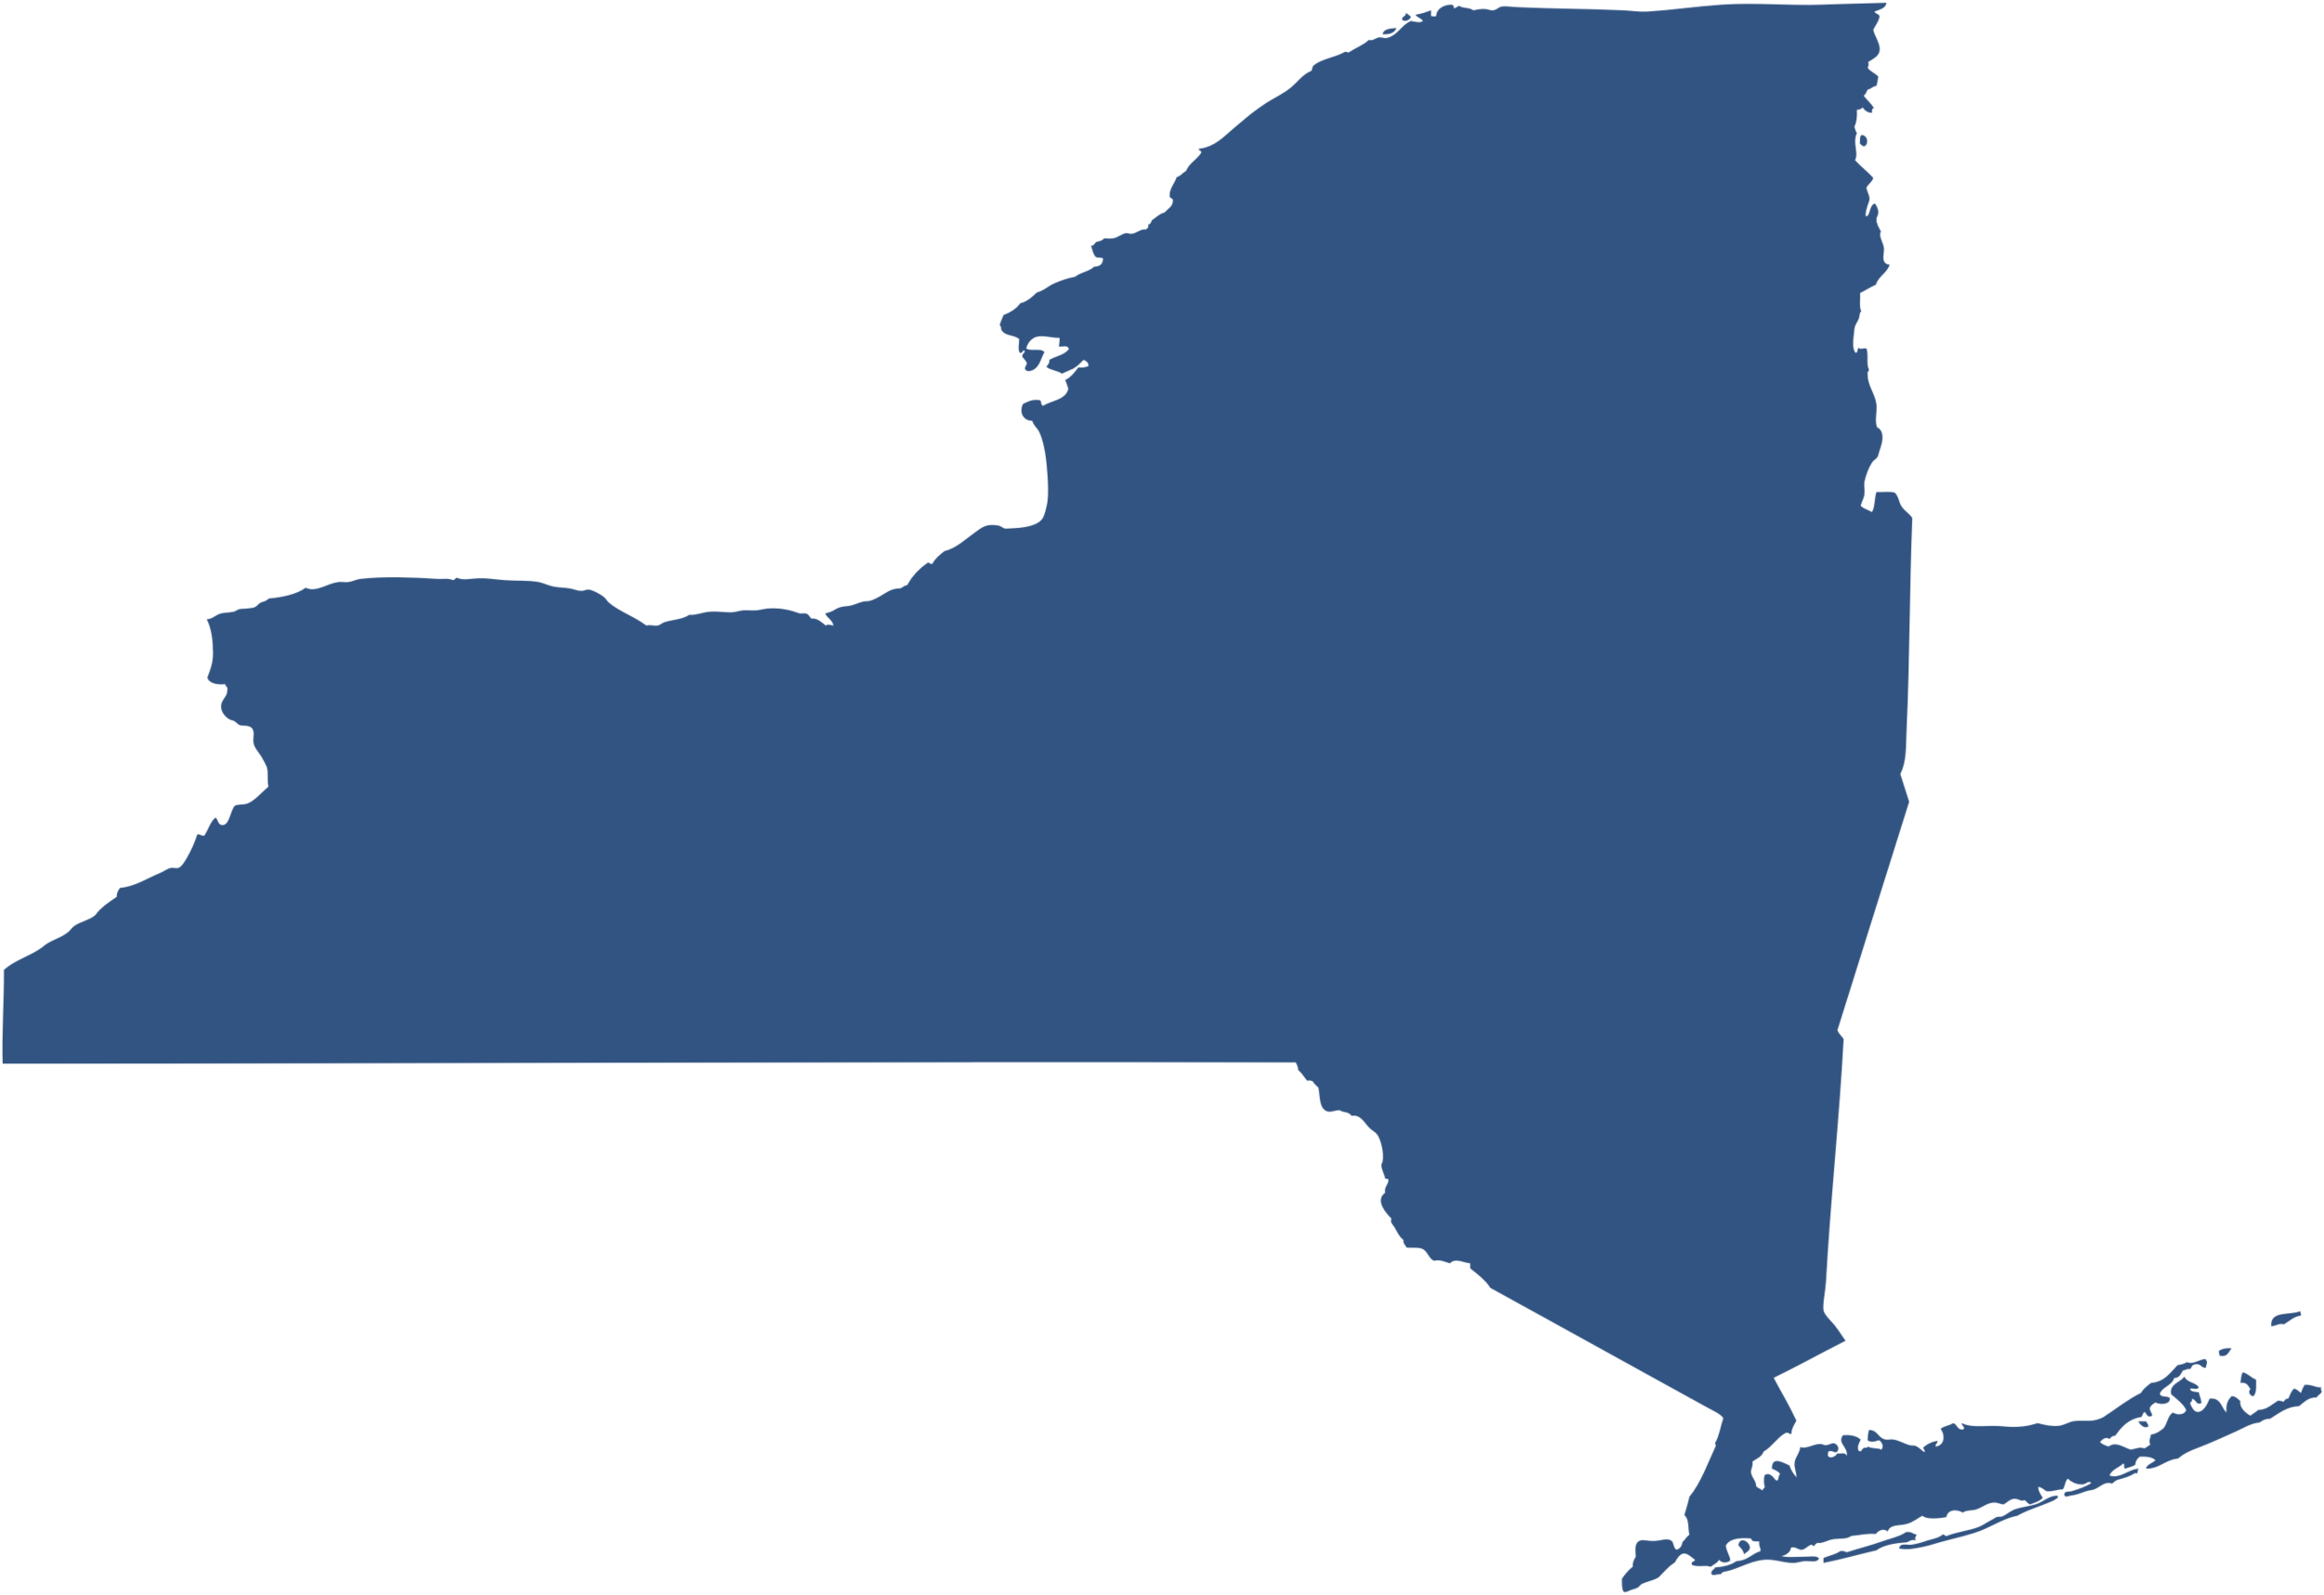 - State's Rank by Arab American Population: 4Census Estimated Arab American Population: 194,809*